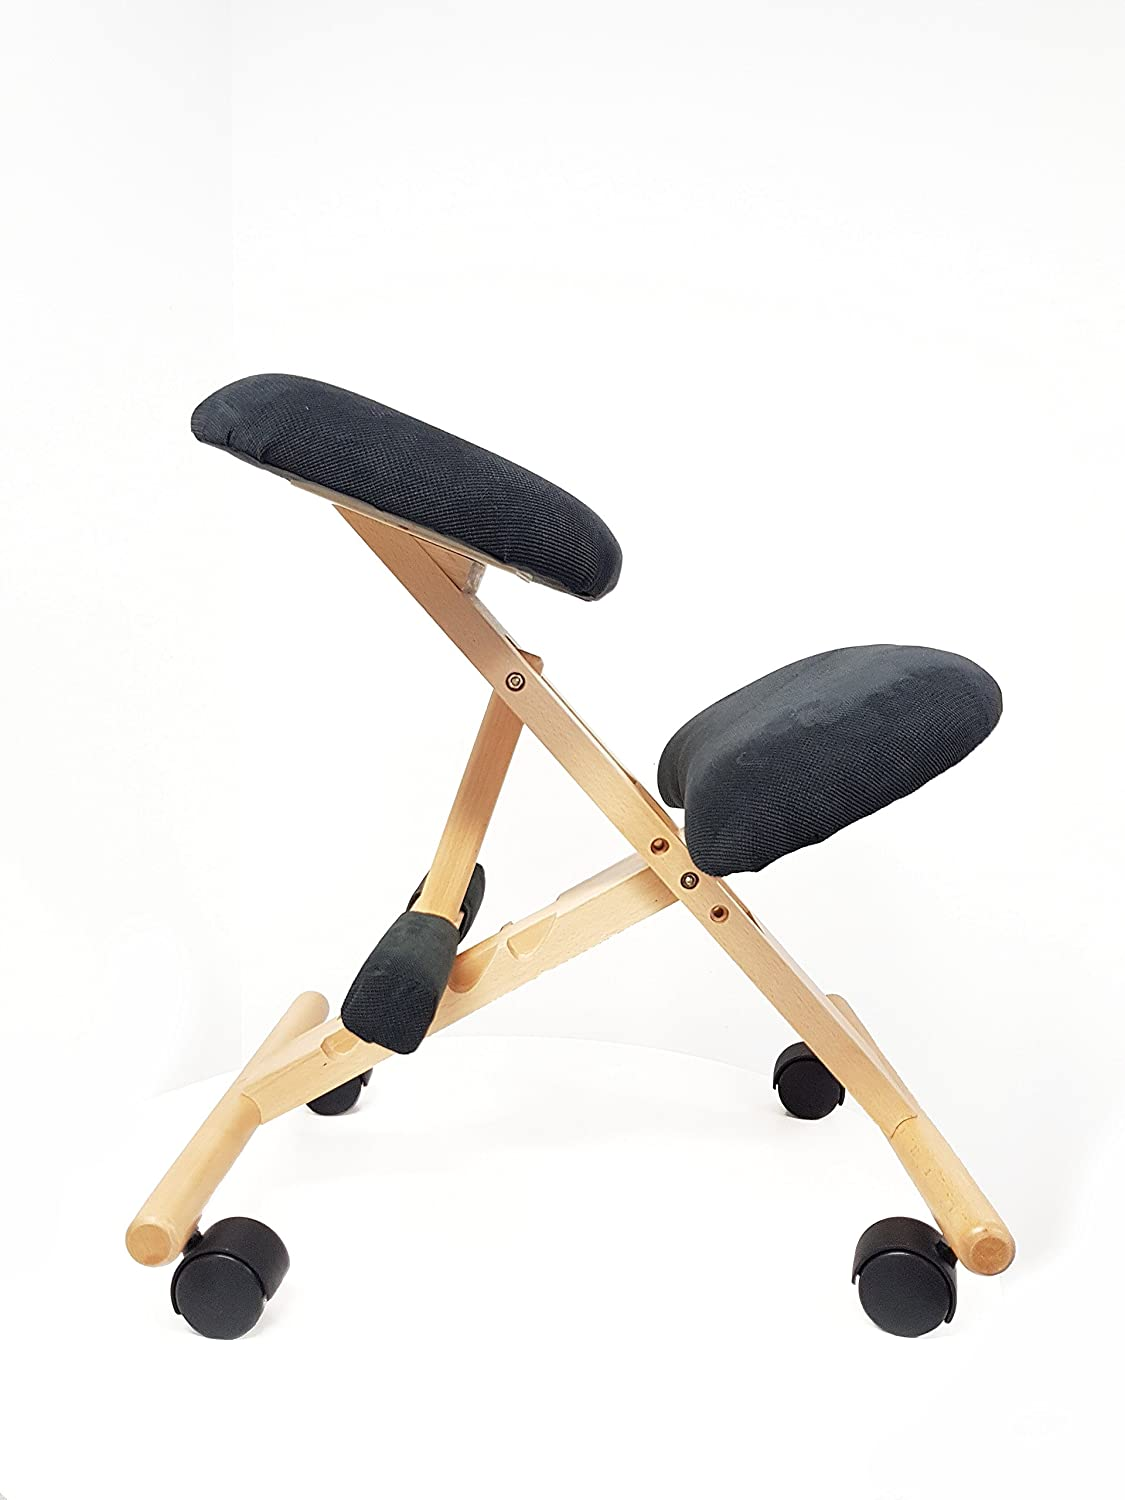 Snug Furniture - Kneeling Chair with footrest - natural wood with black seat